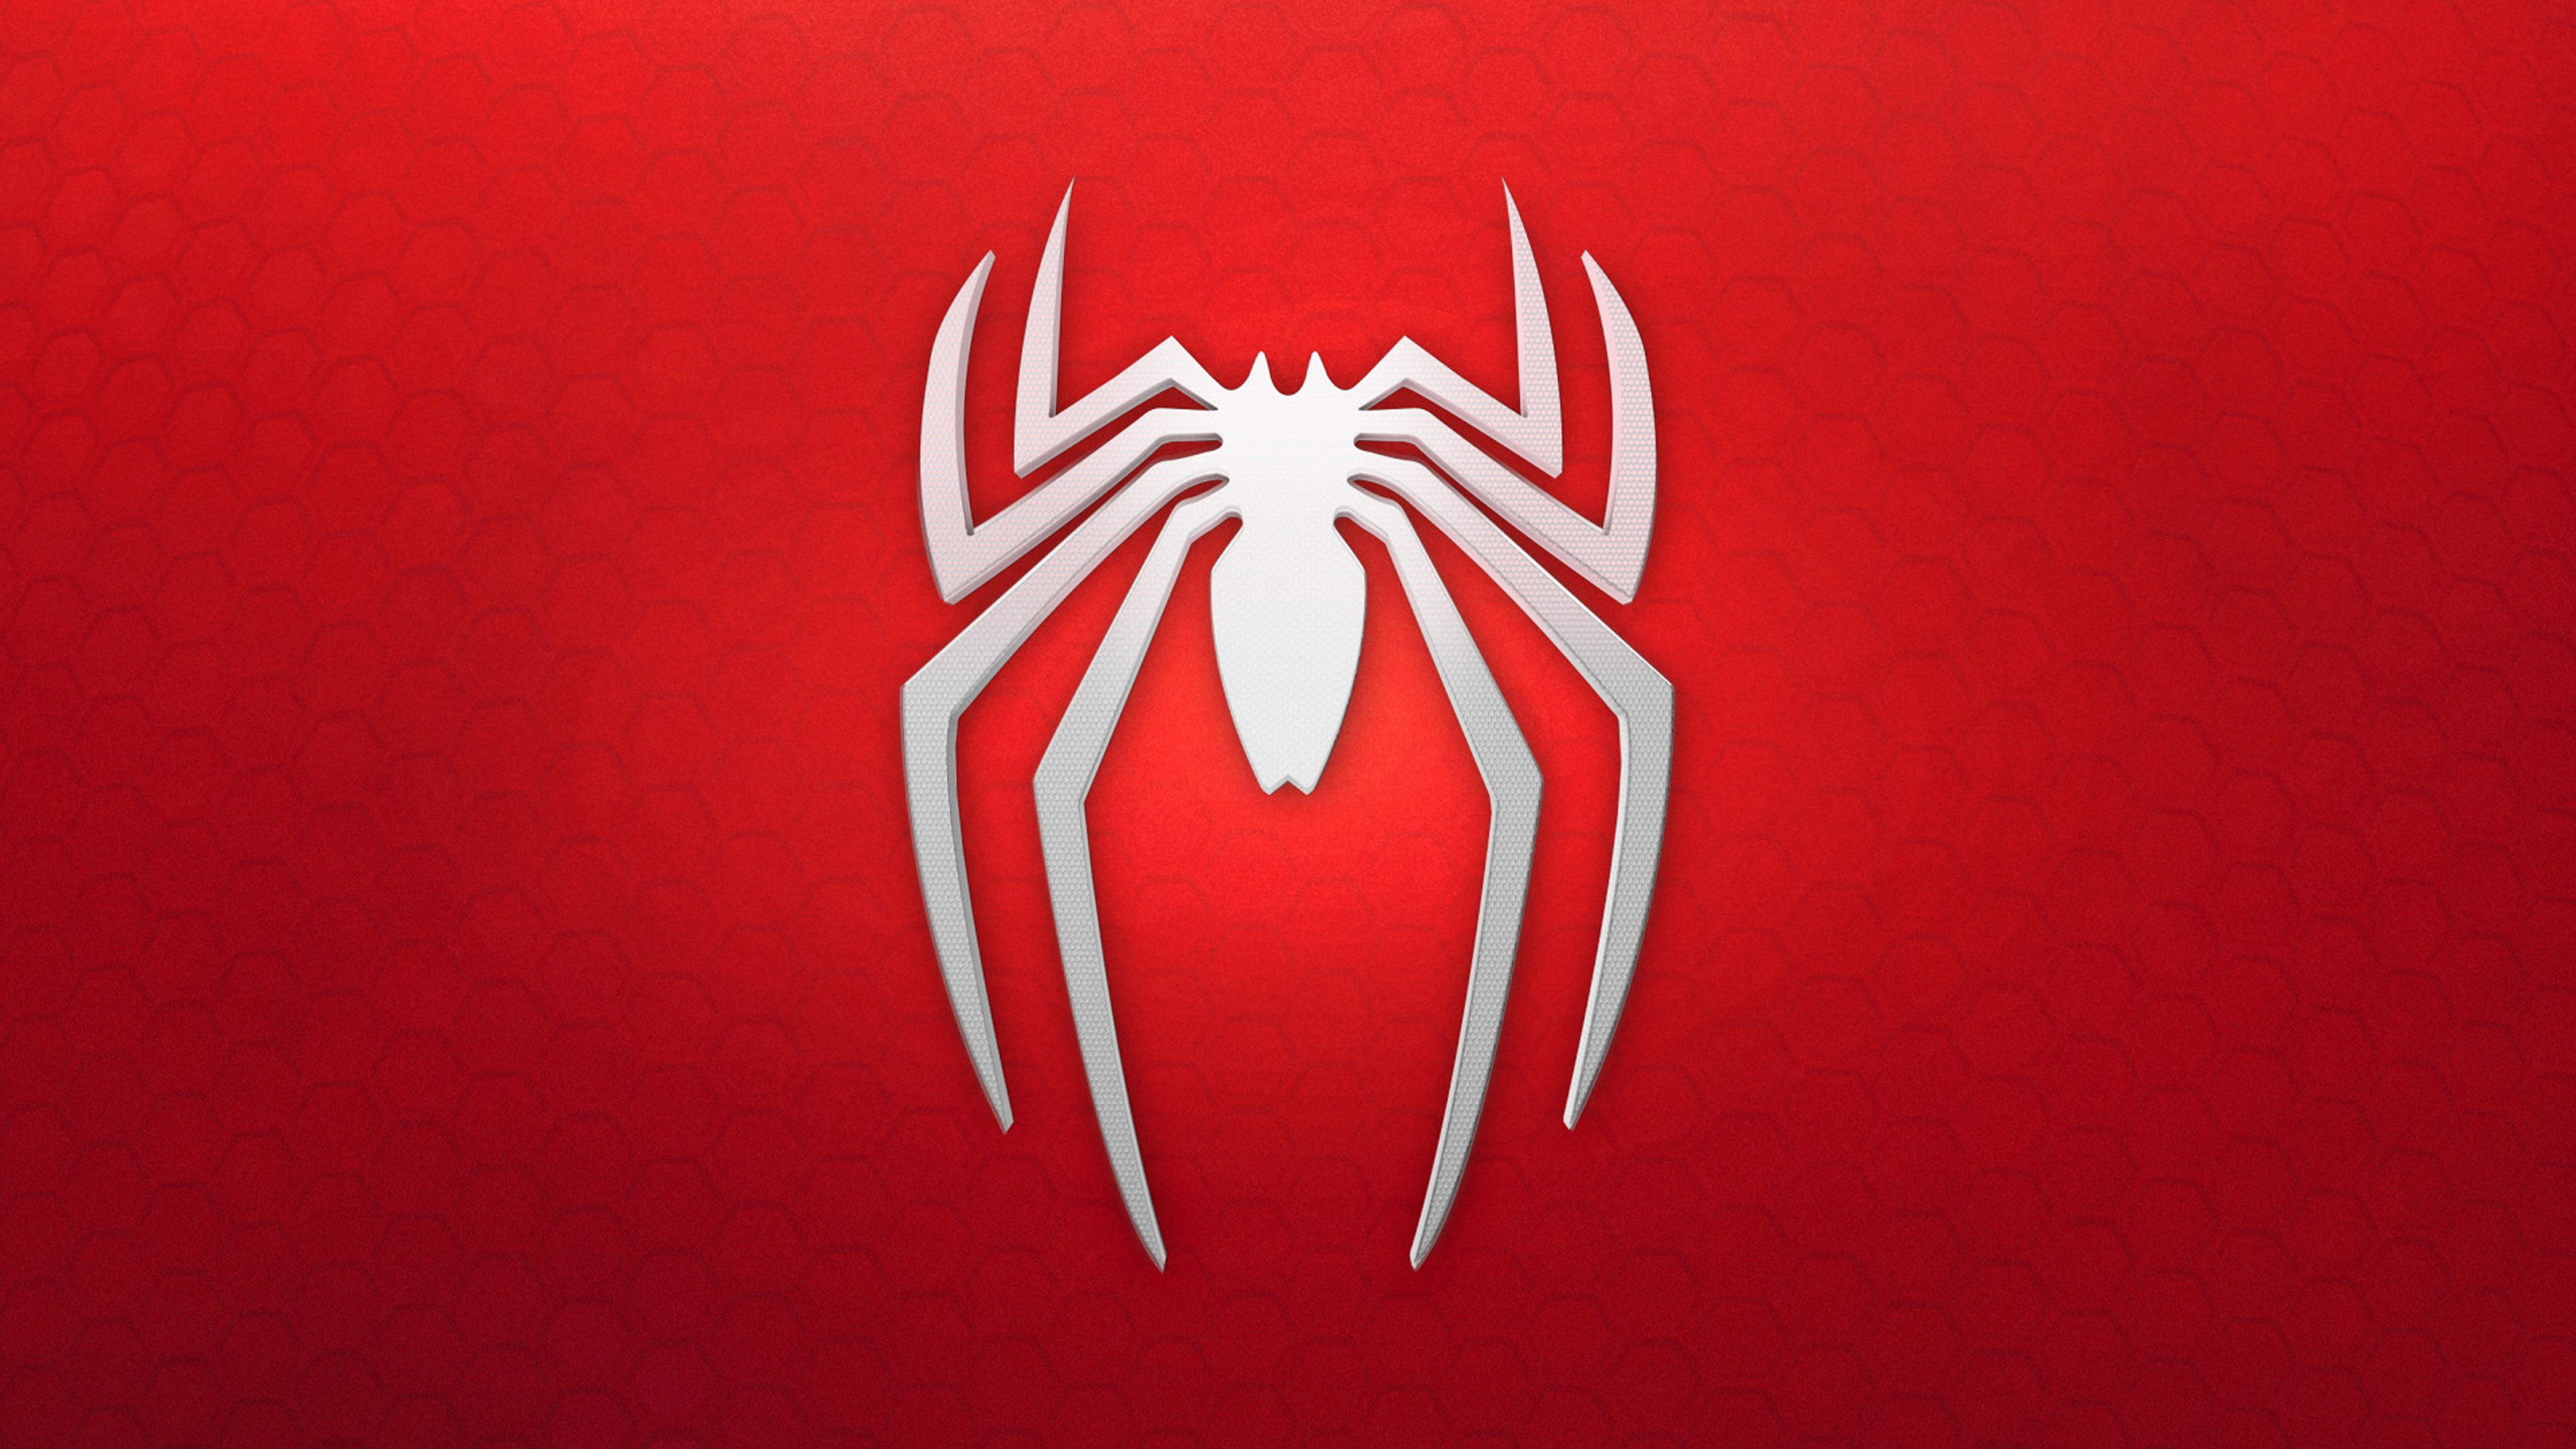 Spiderman 4k Logo Background Super Heroes Wallpapers Spiderman Wallpapers Red Wallpapers Spiderman Ps4 Wallpaper Hero Wallpaper Background Images Wallpapers